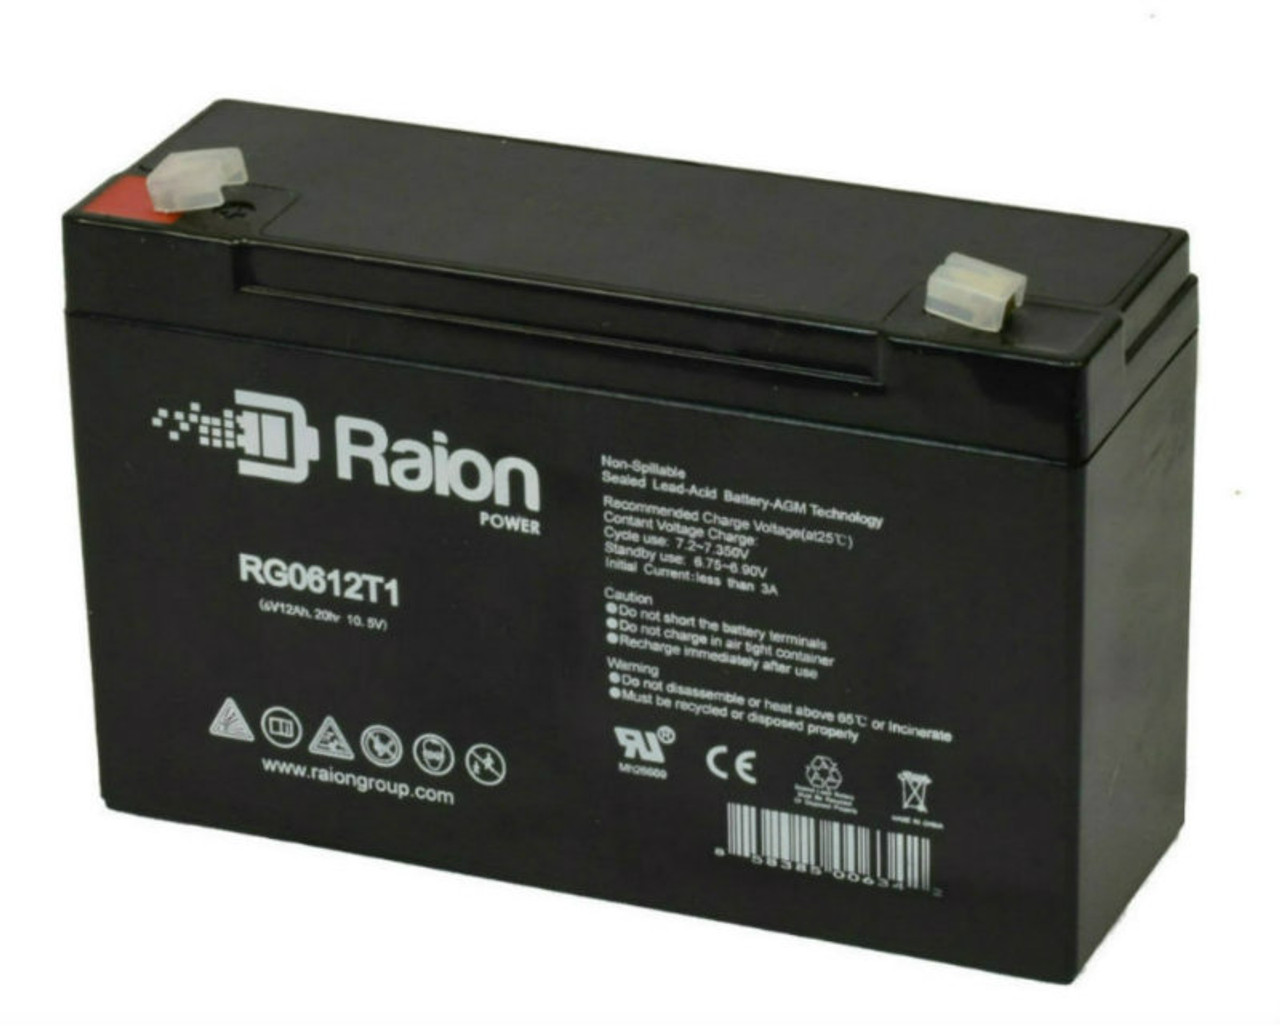 Raion Power RG06120T1 Replacement Battery Pack for Holophane M13 emergency light